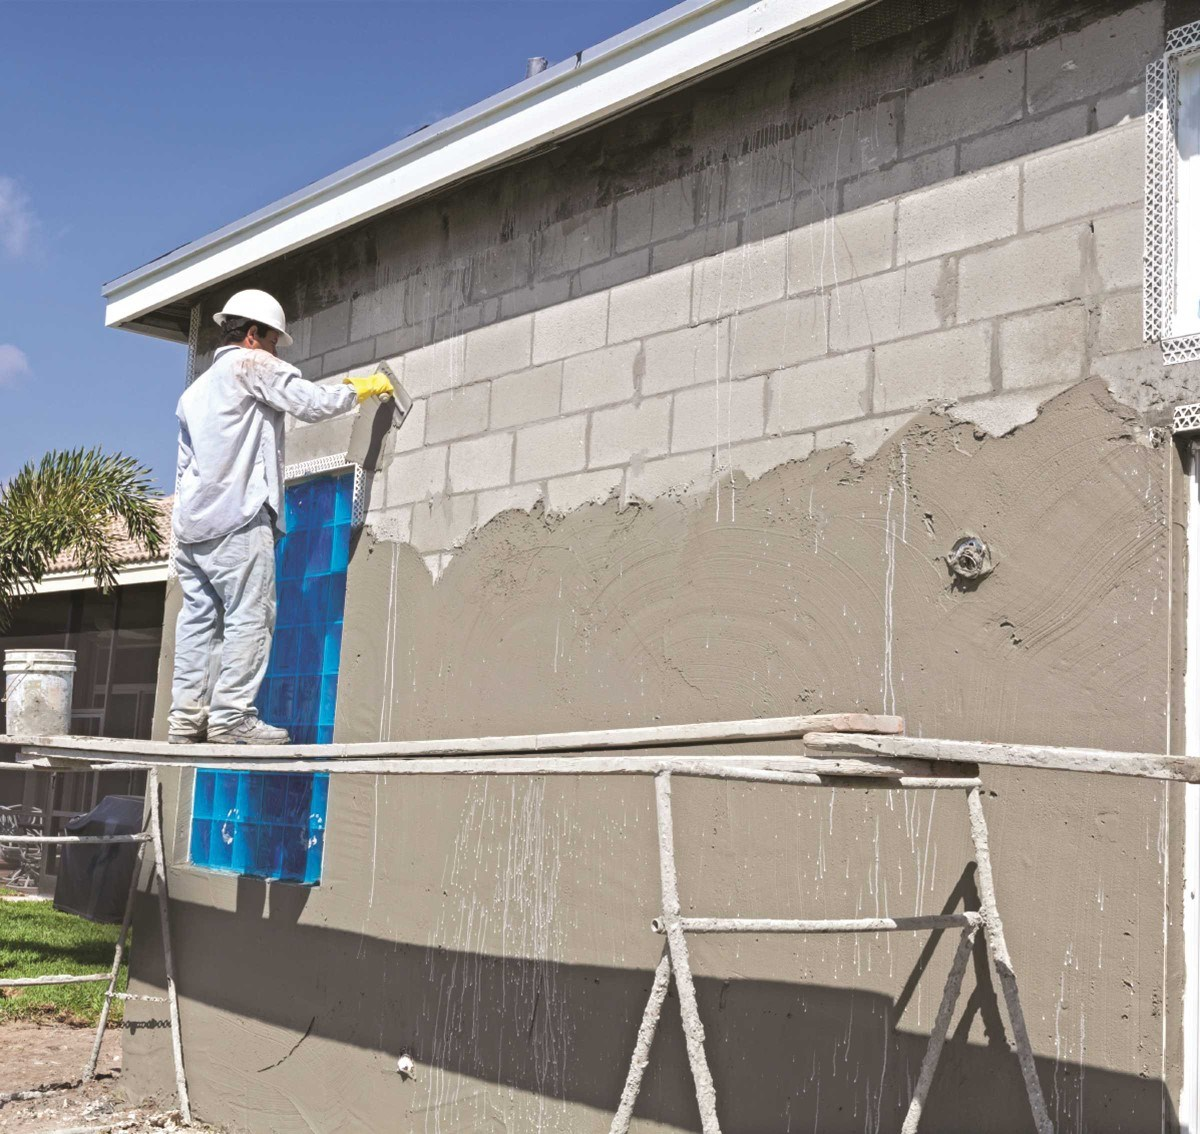 Beautiful Southern Floridau0027s Homeowner Associations May Not Have To Deal With Much In  The Way Of Snow And Ice When It Comes To Protecting And Repairing Their  Concrete ...